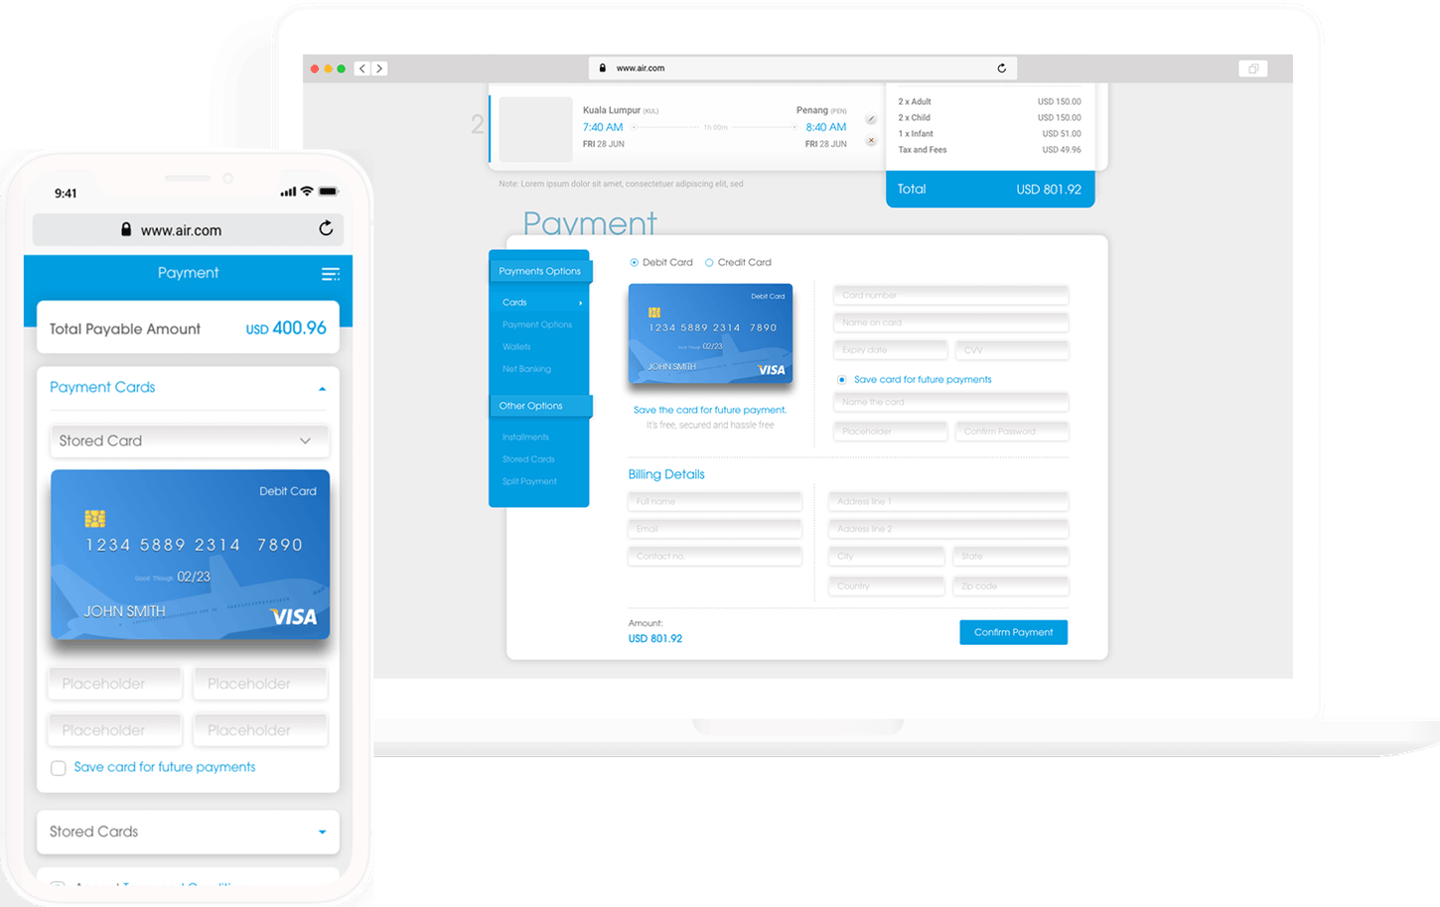 Velocity responsive Hosted Payment Pages powering seamlessly laptop, desktop or mobile devices